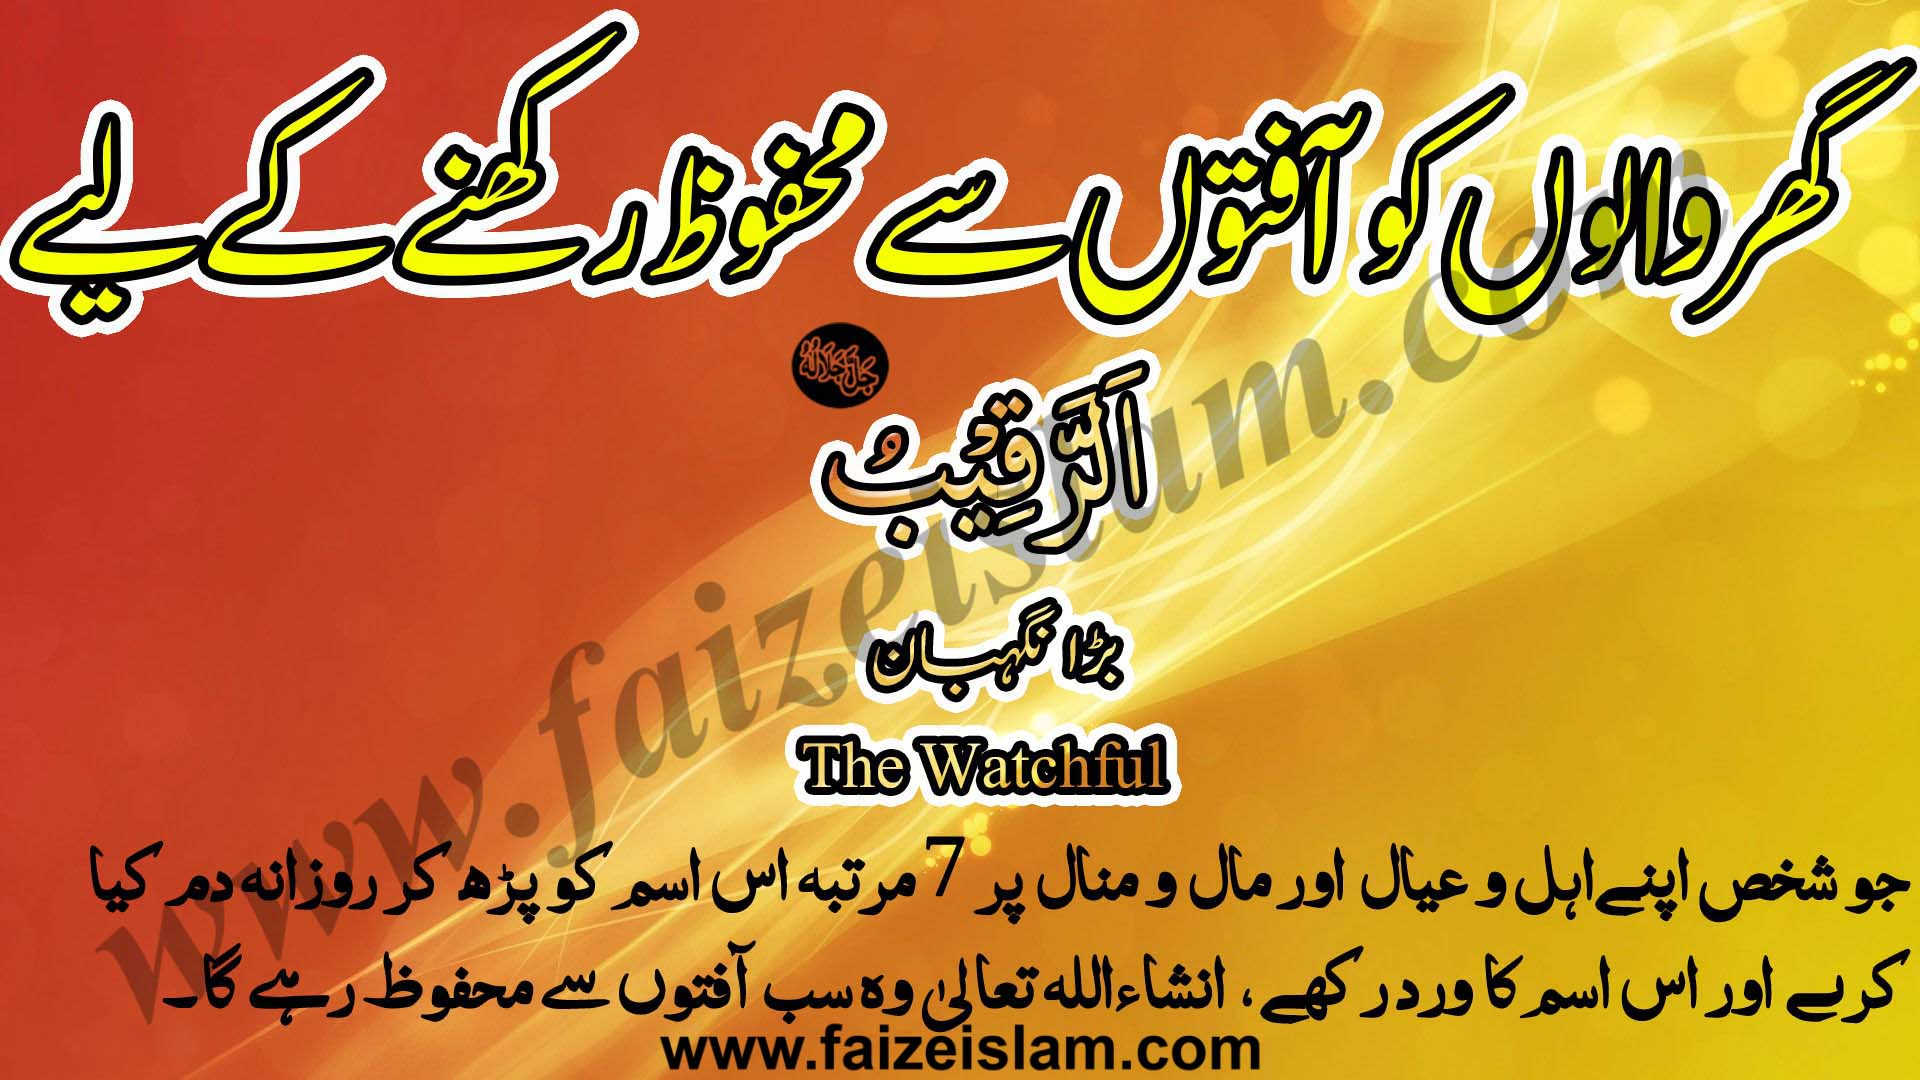 Photo of Ghar Walon Ko Aafaton Say Mehfooz Rakhnay Kay Liye Wazifa In Urdu